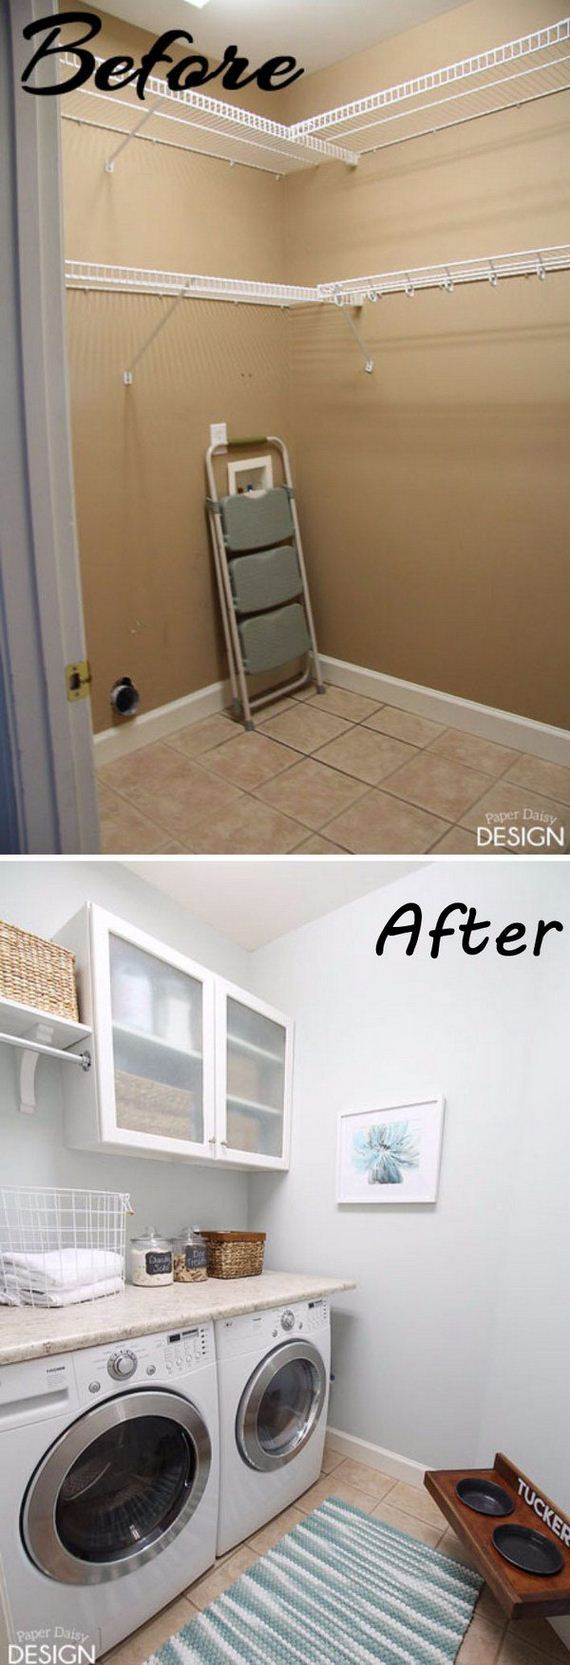 12-before-laundry-room